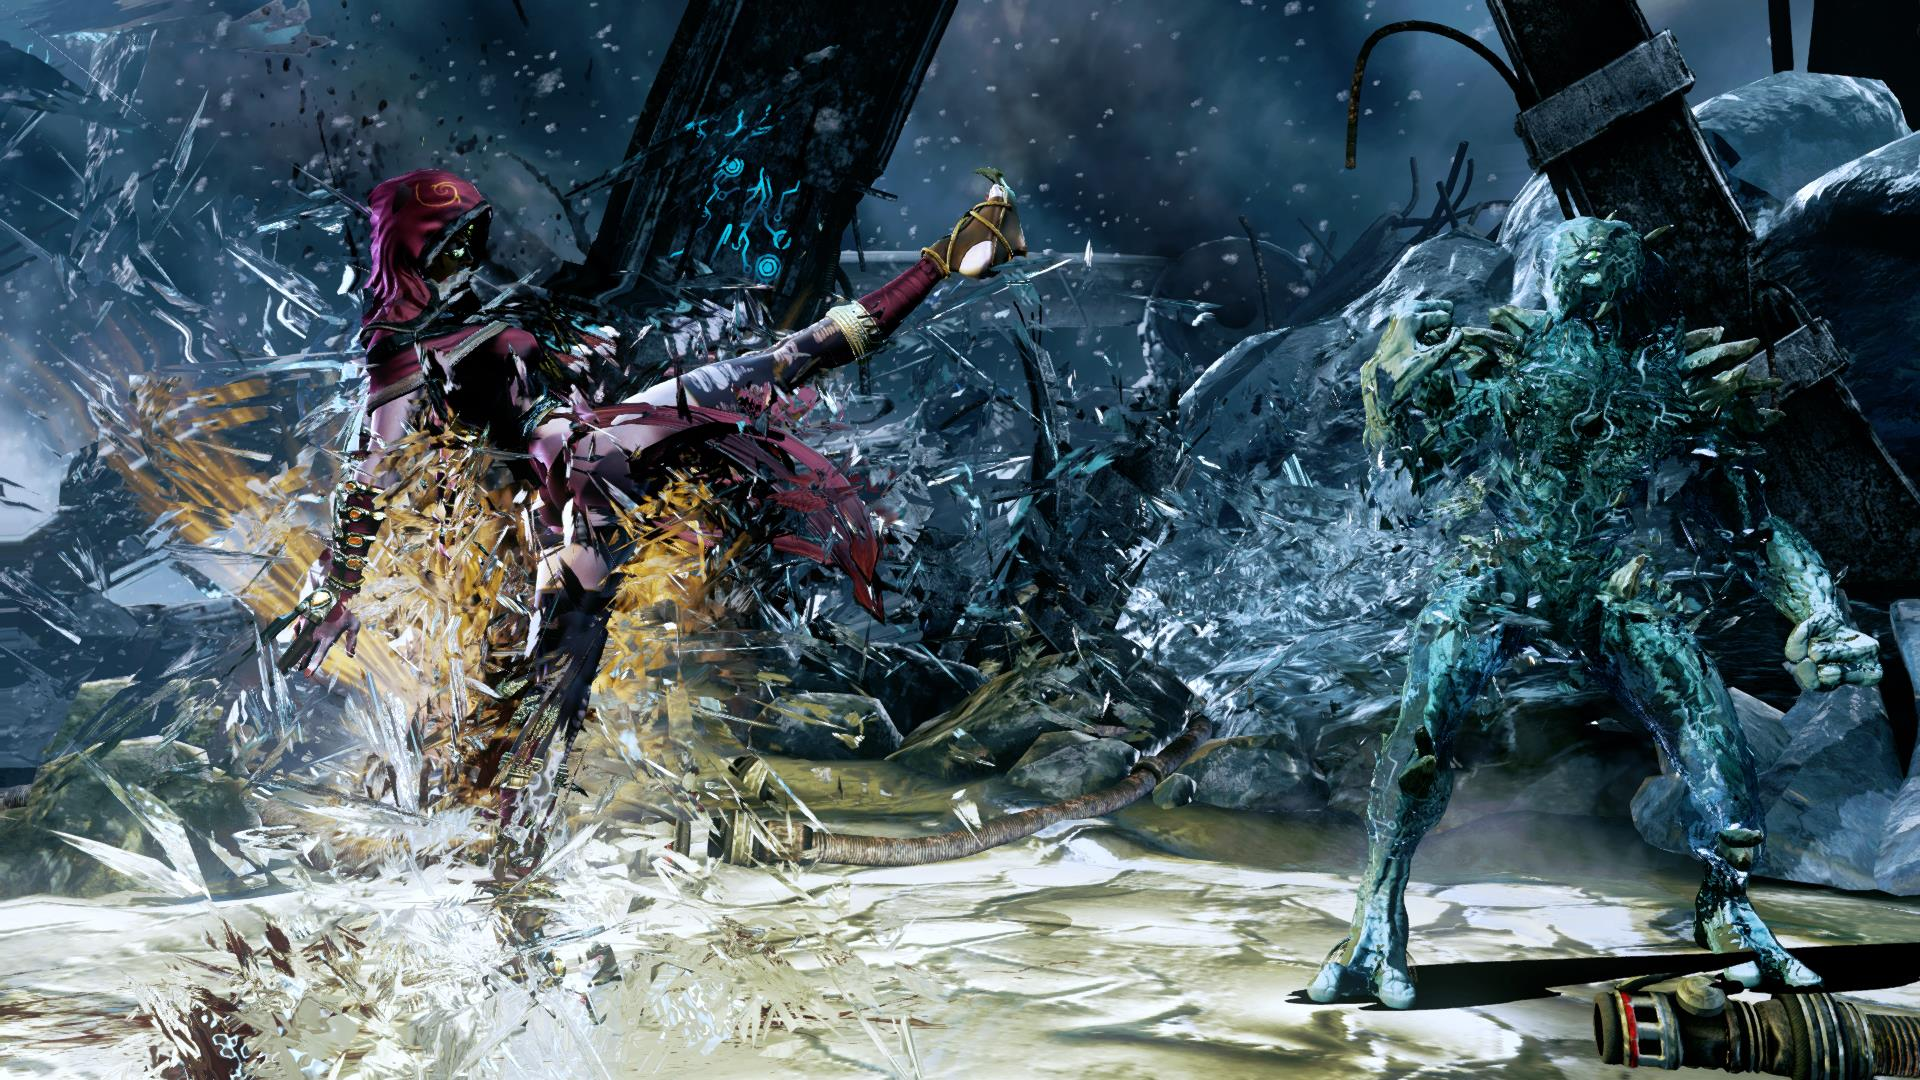 Glacius' Endurance in Killer Instinct